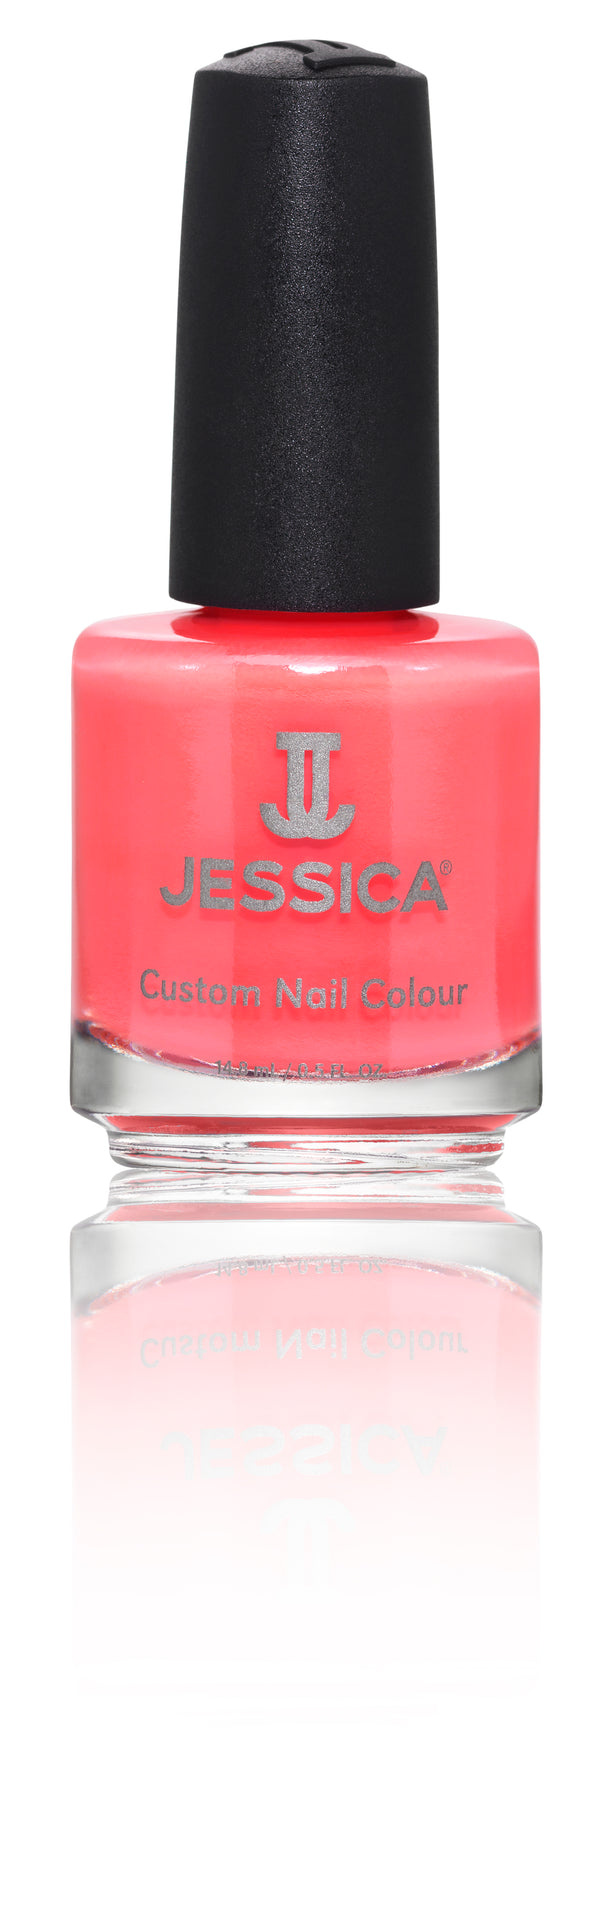 Natural Nail Care Treatments and Colours – Jessica Cosmetics